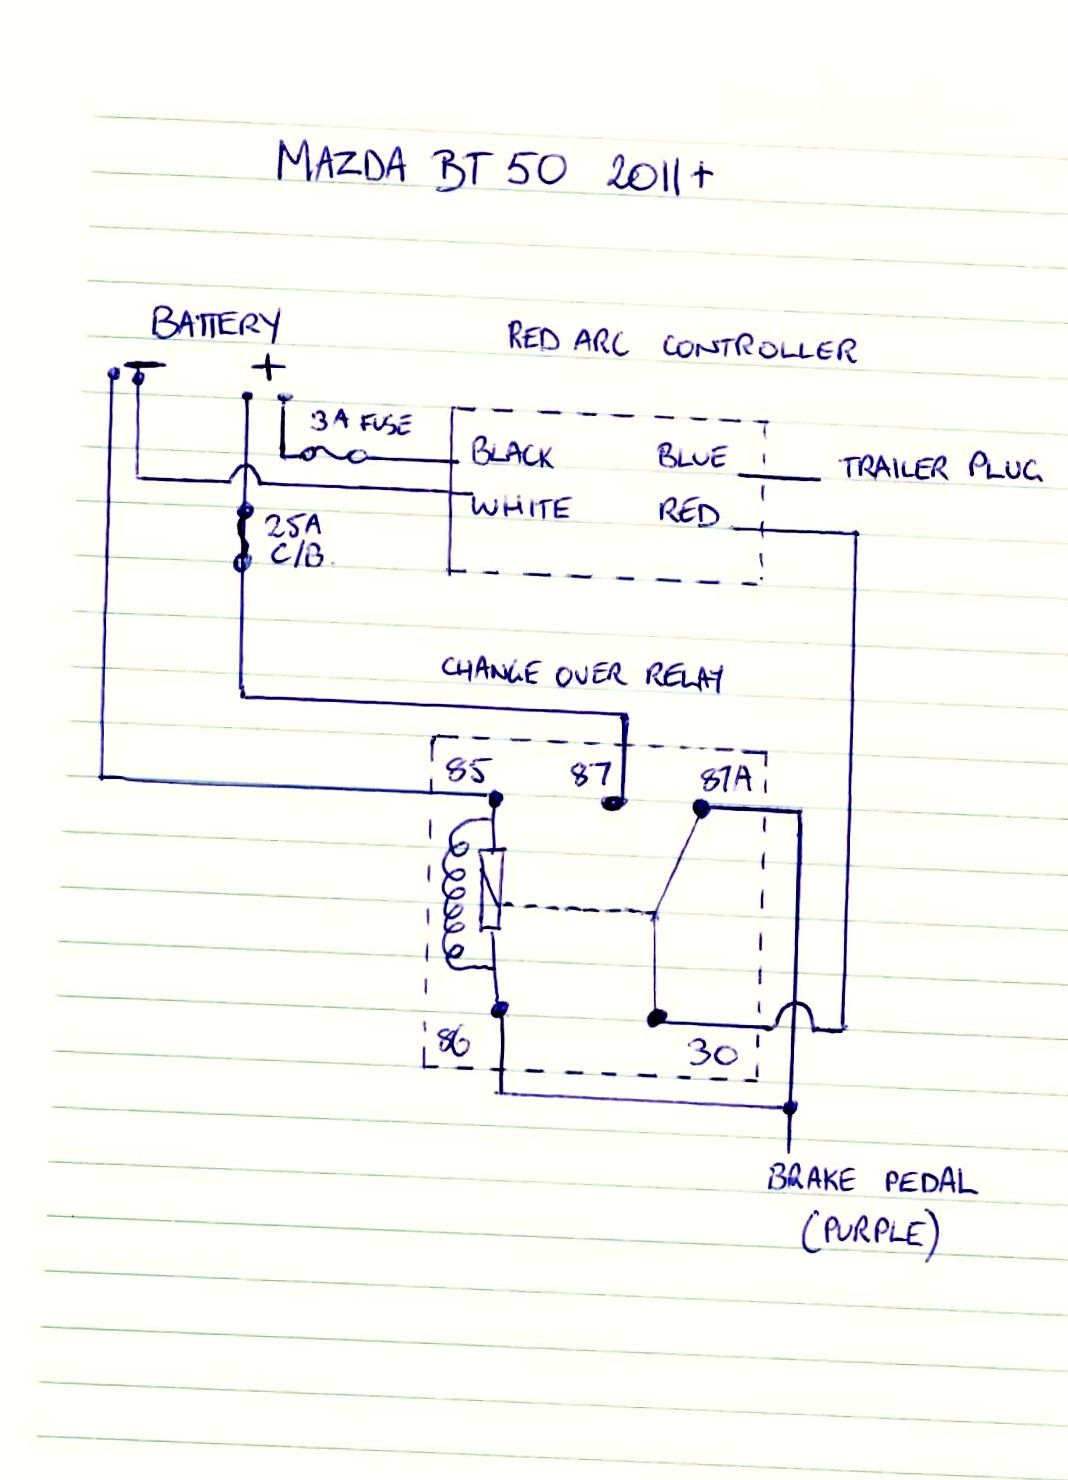 BT 50 Brake Controller Wiring Diagram | Discovery LR5 4x4